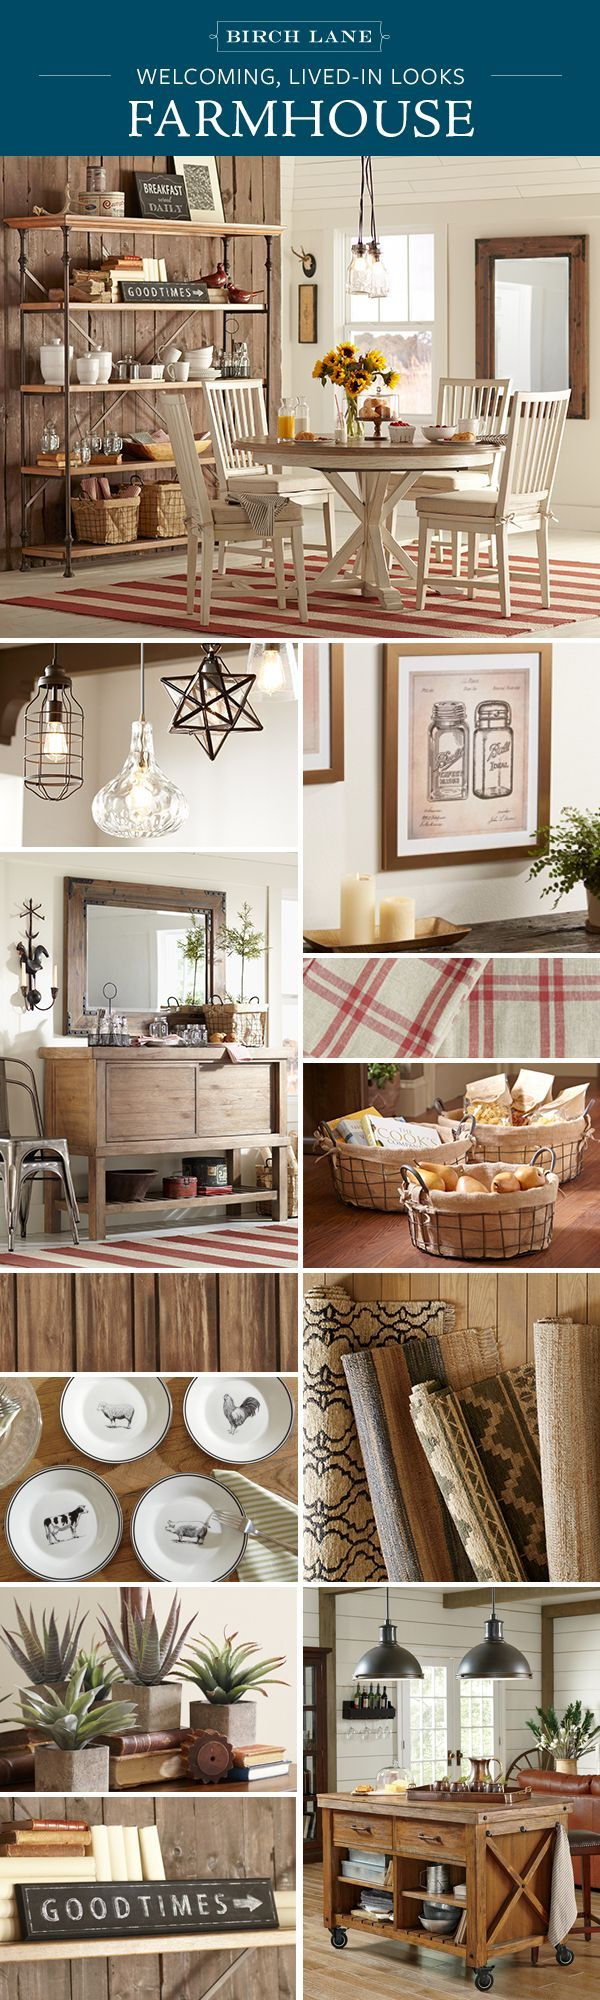 Rich Textures Define The Rustic Style